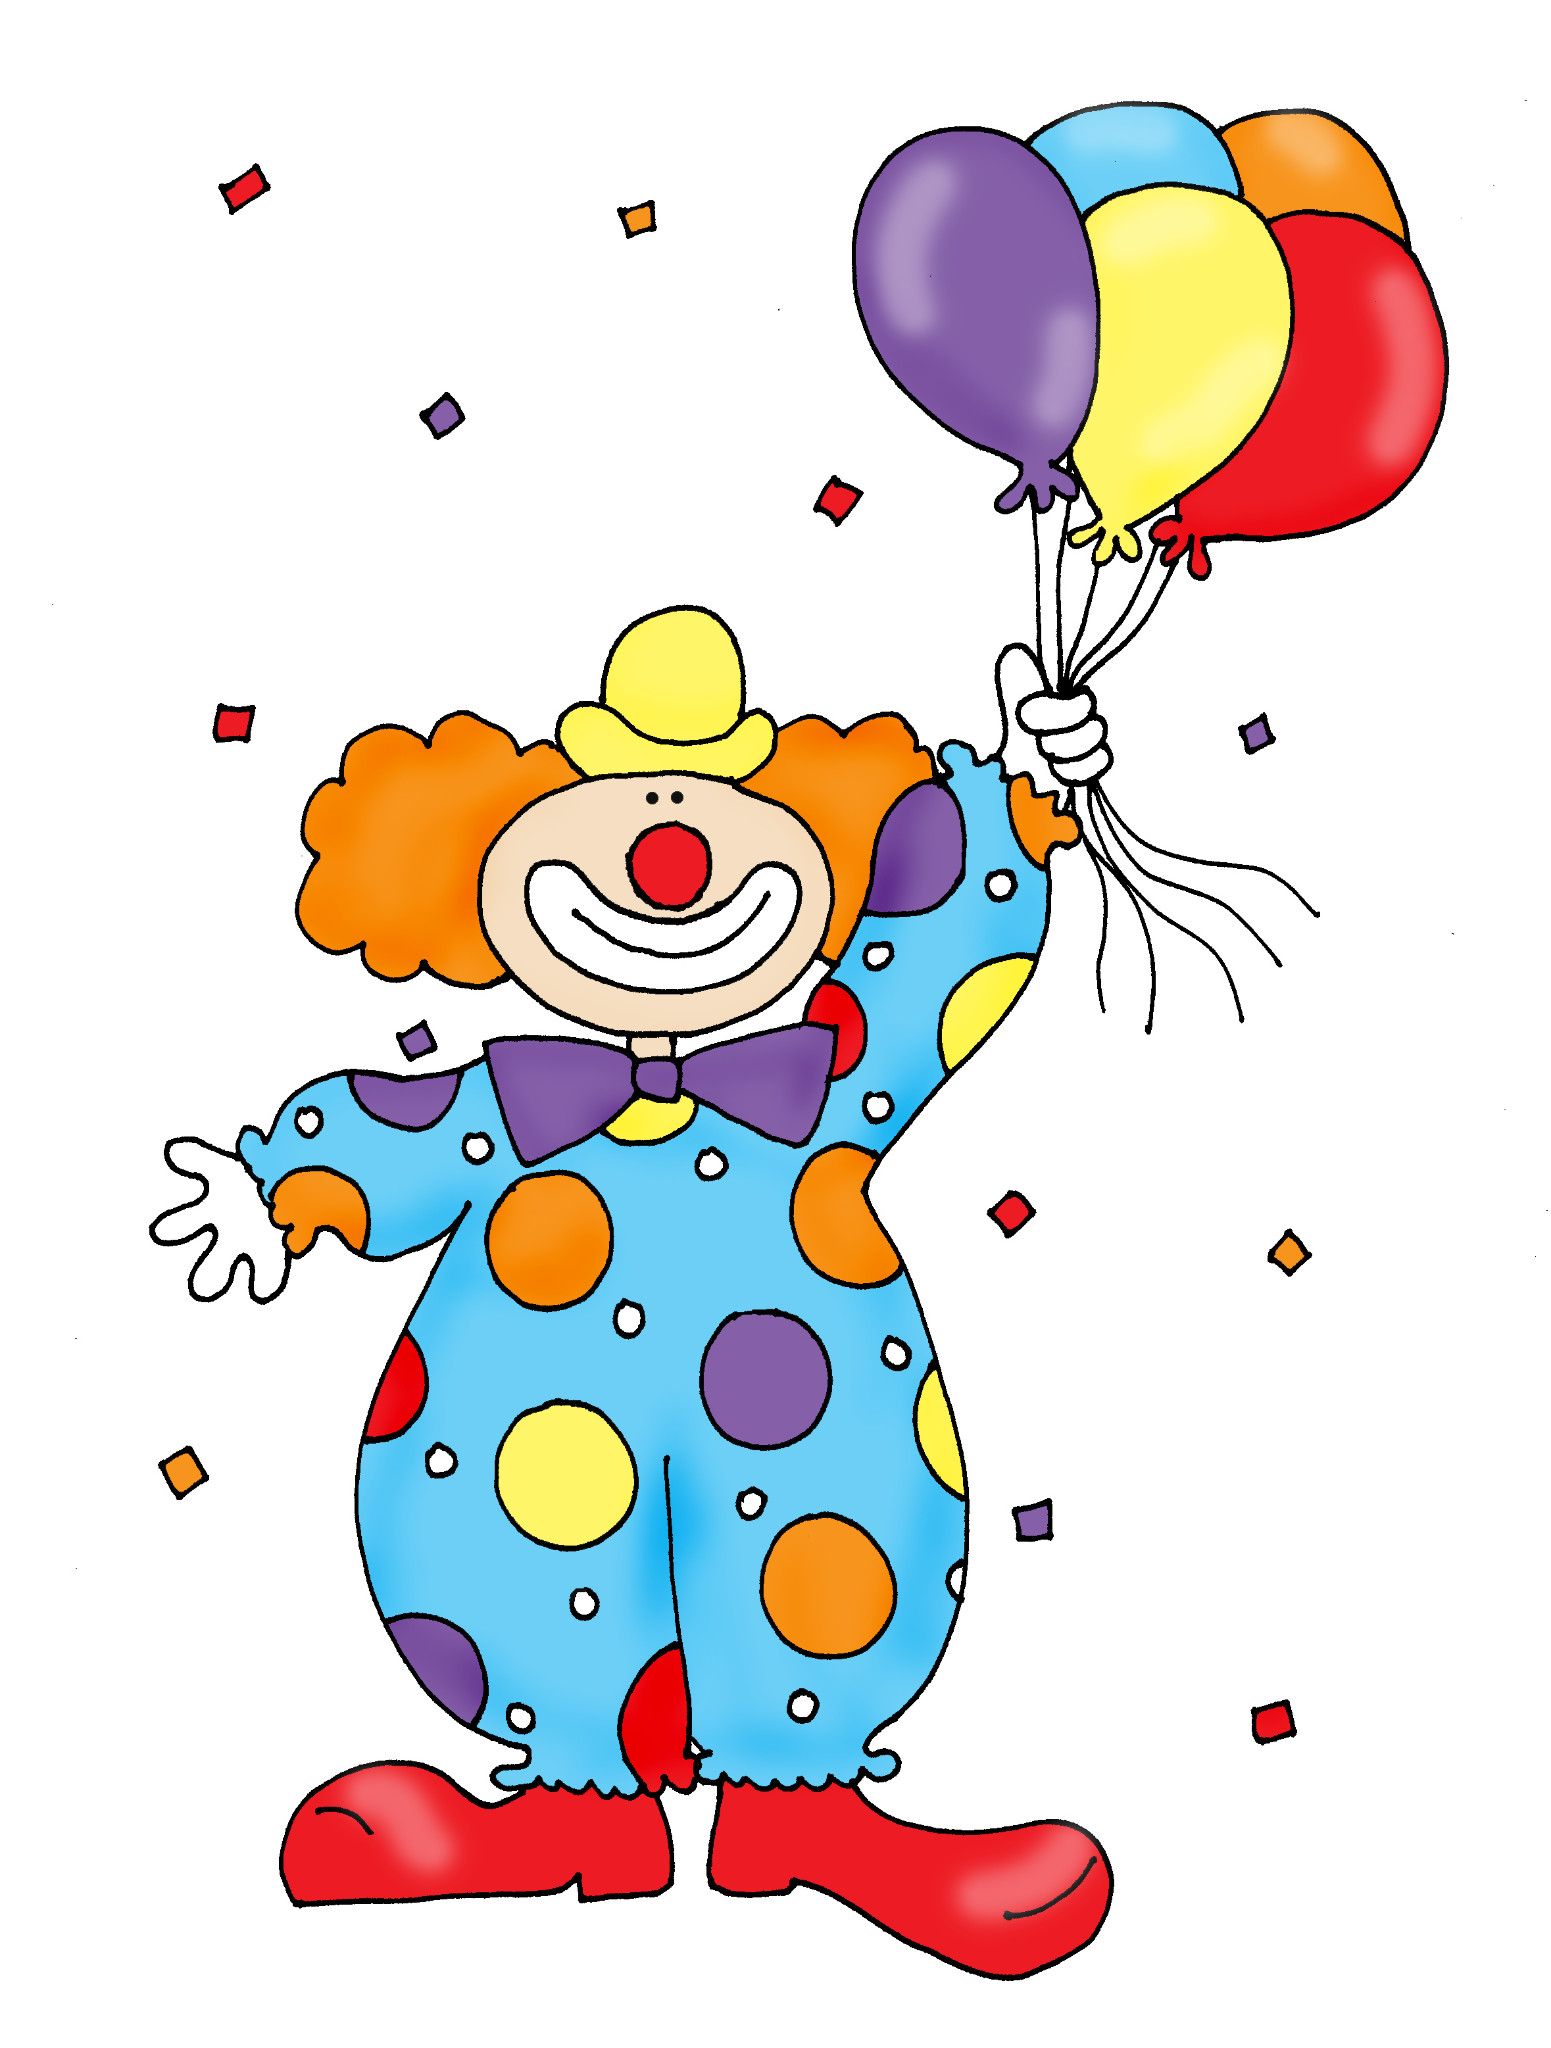 Clown images clipart hdclipartall